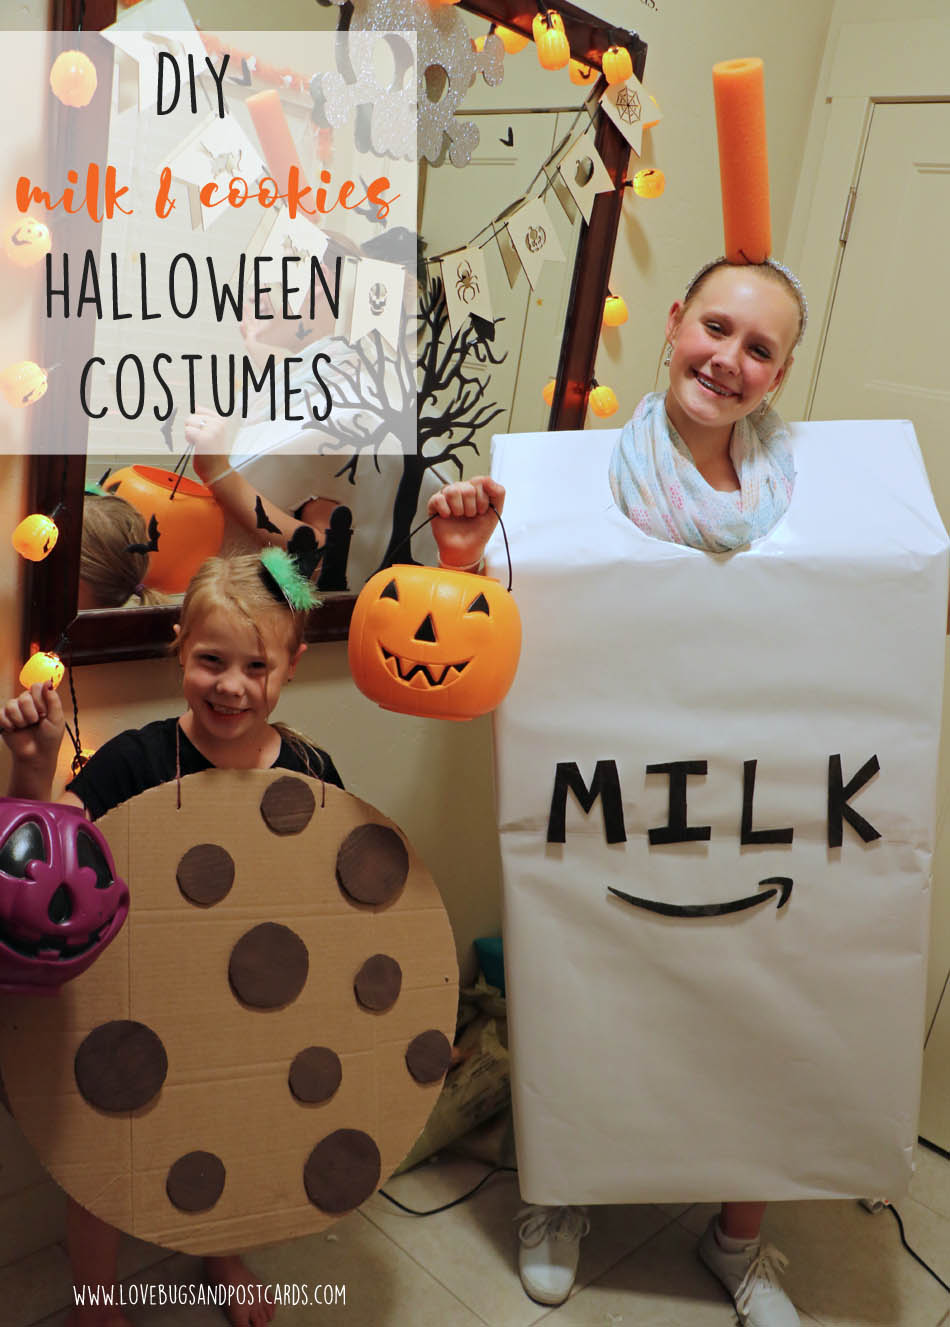 DIY Milk and Cookies costume made with boxes  sc 1 st  Lovebugs and Postcards & DIY Milk and Cookies costume made with boxes - Lovebugs and Postcards